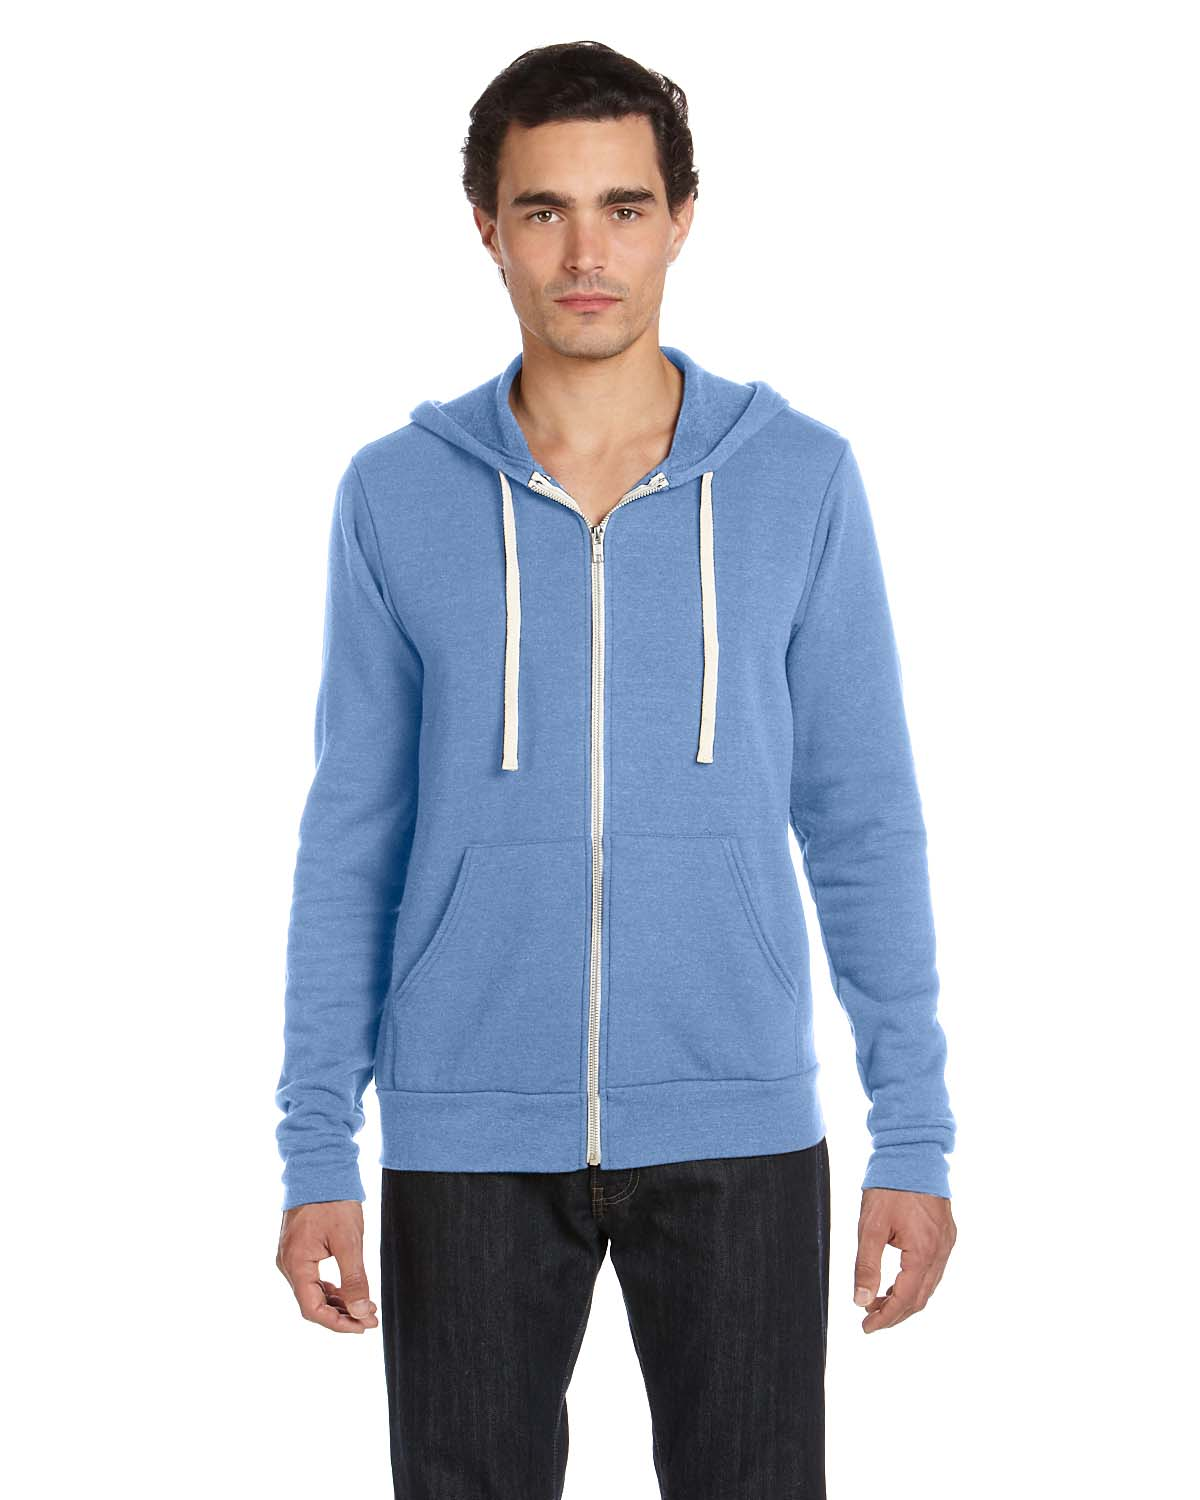 Bella Unisex Triblend Sponge Fleece Full-Zip Hoodie